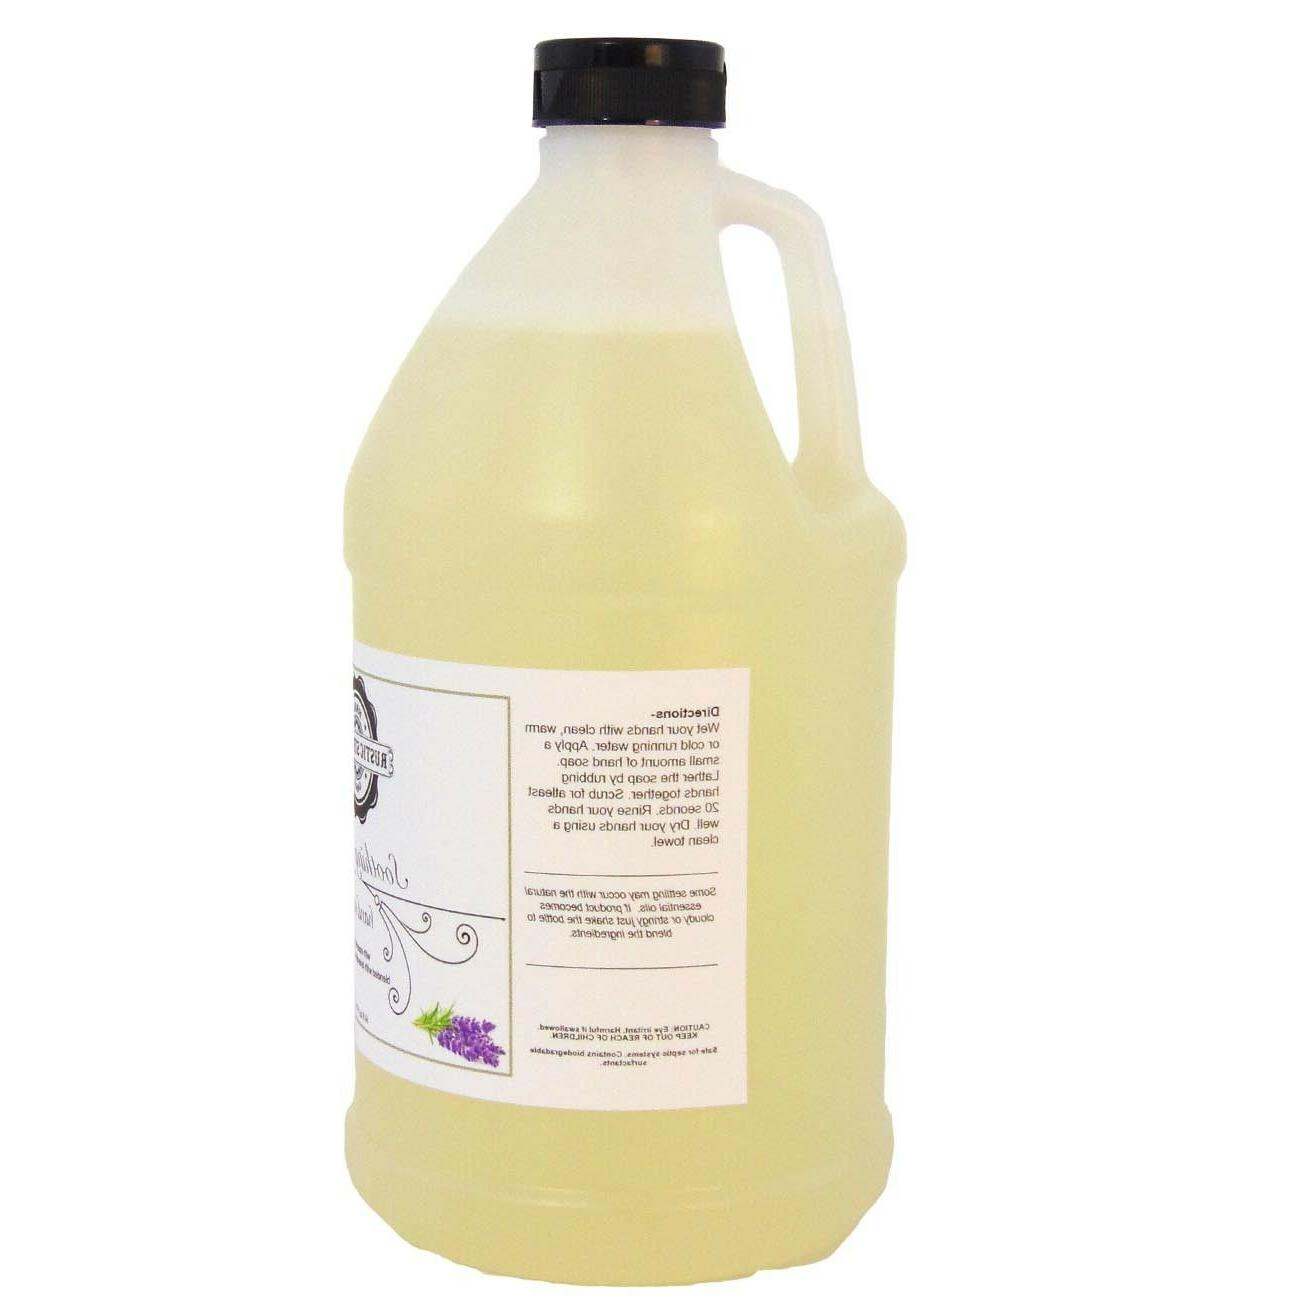 Liquid Herb rosemary and EO scent 64oz refill